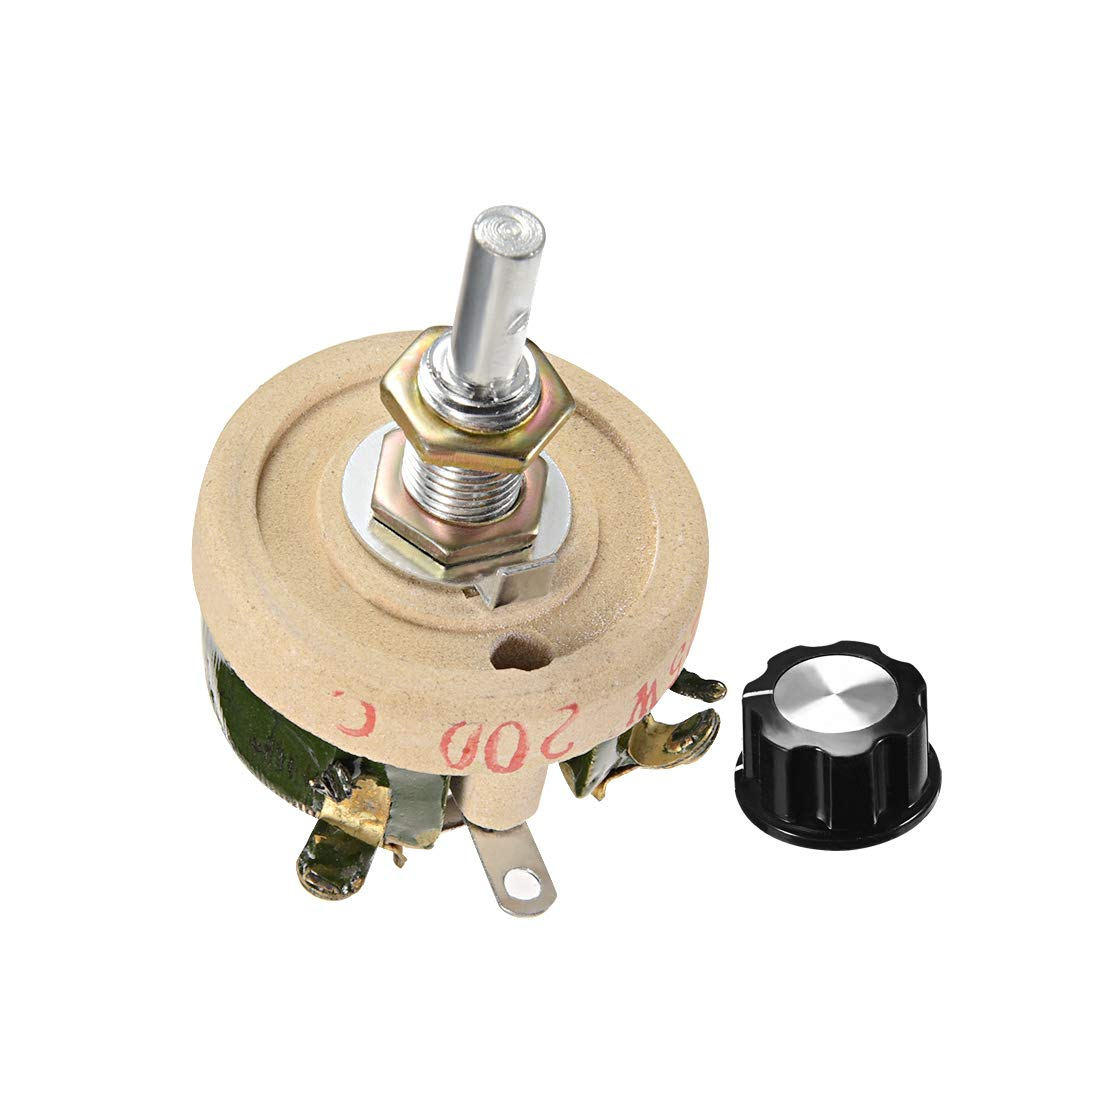 uxcell 150 Ohm 150W High Power Ceramic Wirewound Potentiometer with Knob Rheostat Variable Resistor